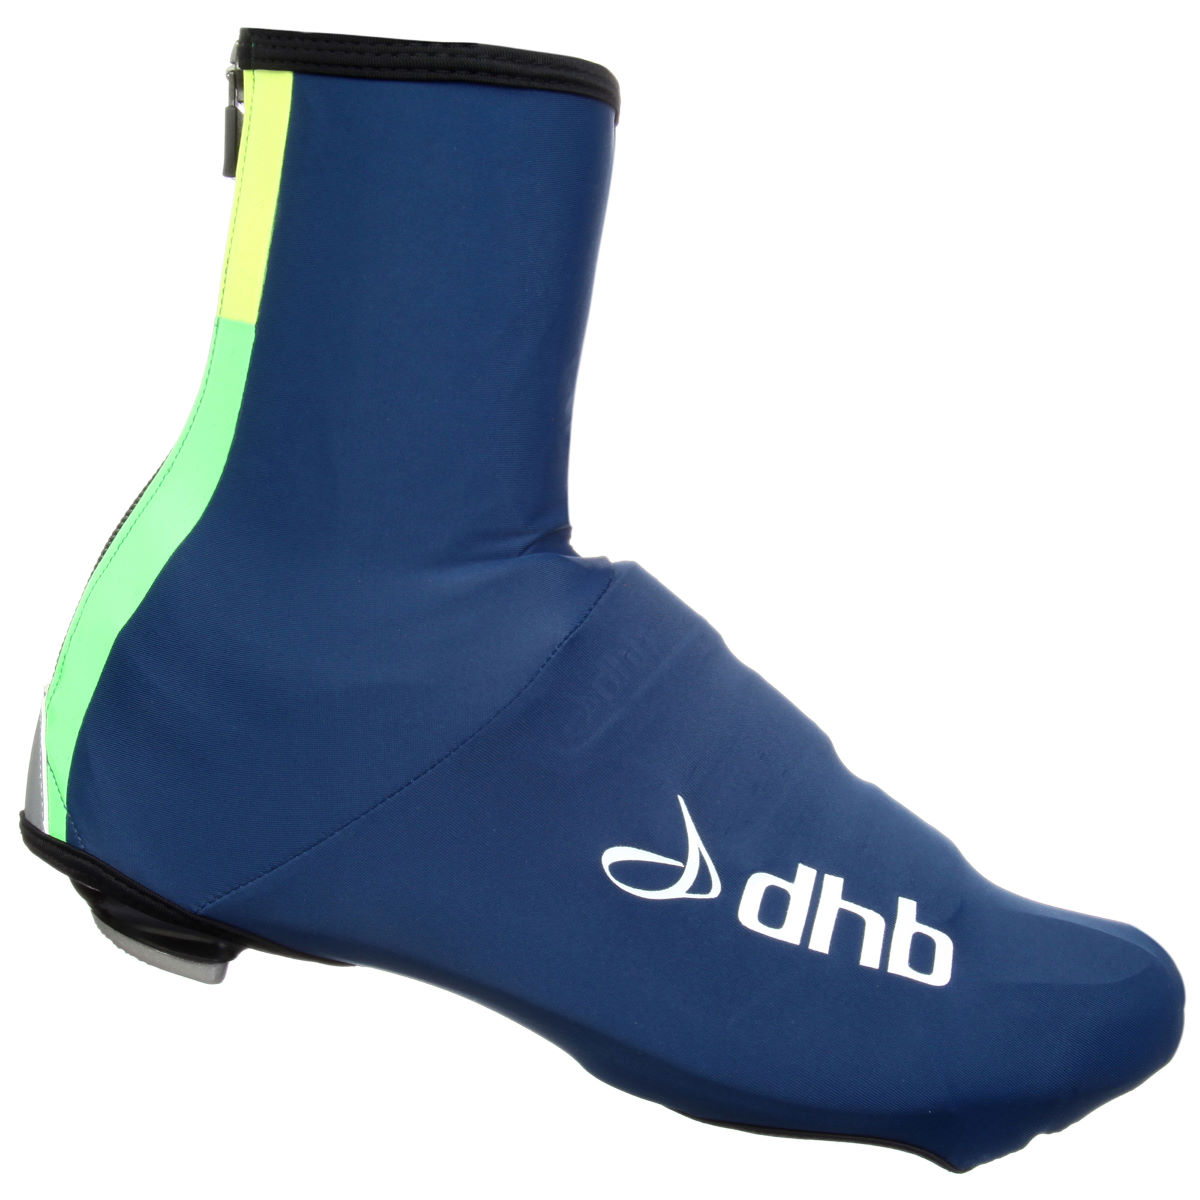 dhb Aeron Speed Overshoe - Medium Navy/Green | Overshoes